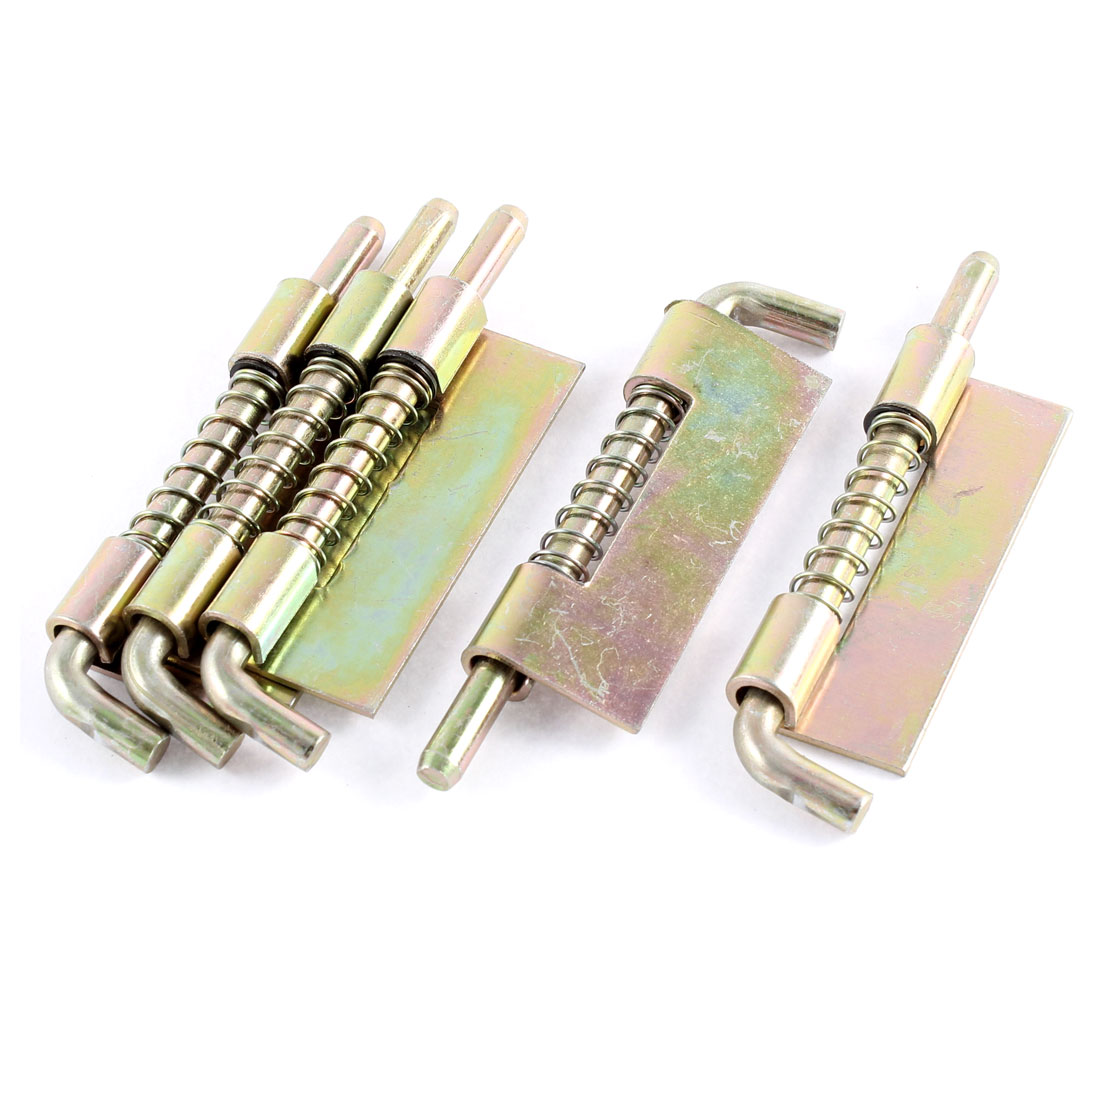 "Hardware Spring Loaded Metal Door Security Safety Barrel Bolt Latch Lock Tool 3.6"" Long 5pcs"